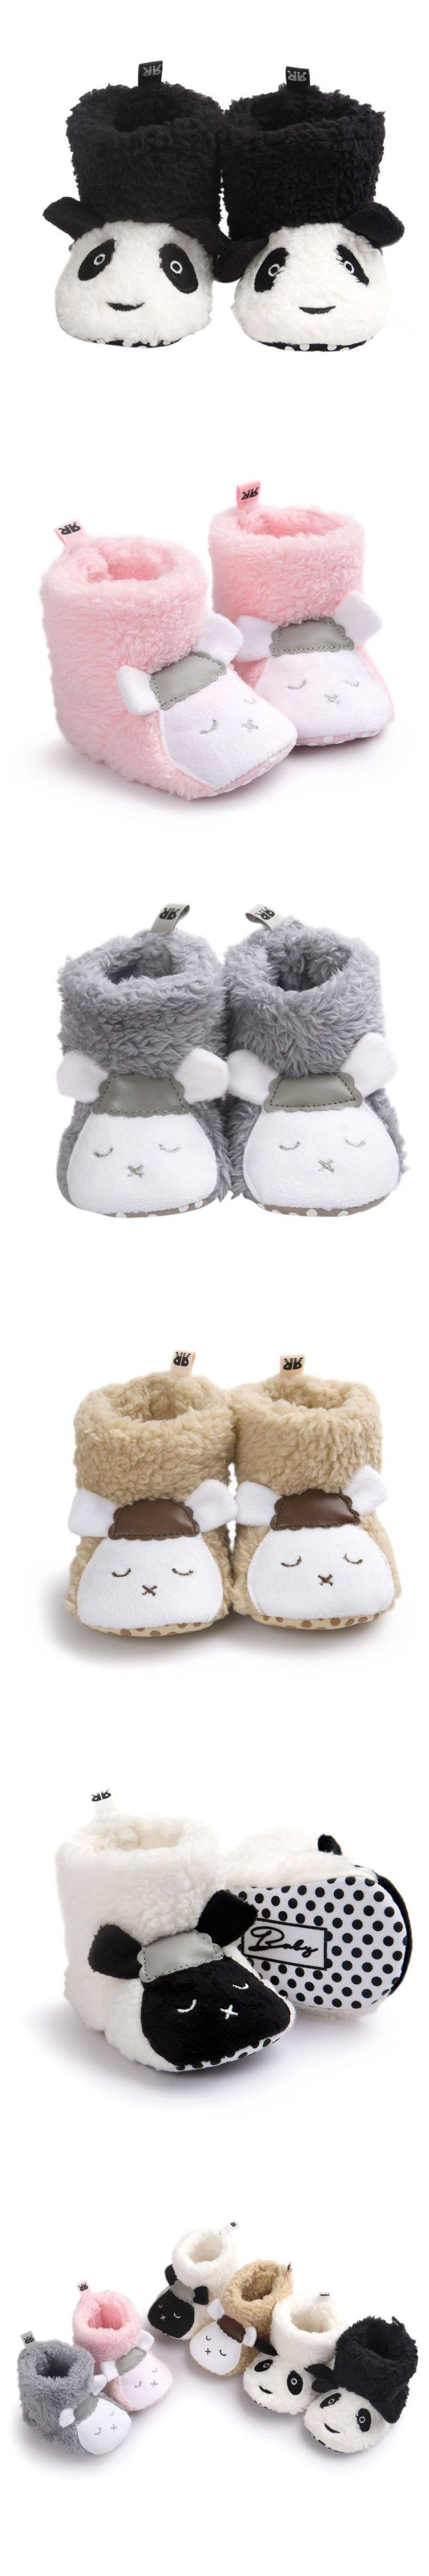 Winter Cute Baby Shoes Girls Warm Baby Girls Comfort Toddler Girl Shoes Infant Girl Bear Woolen Boots Baby Shoes $4.89